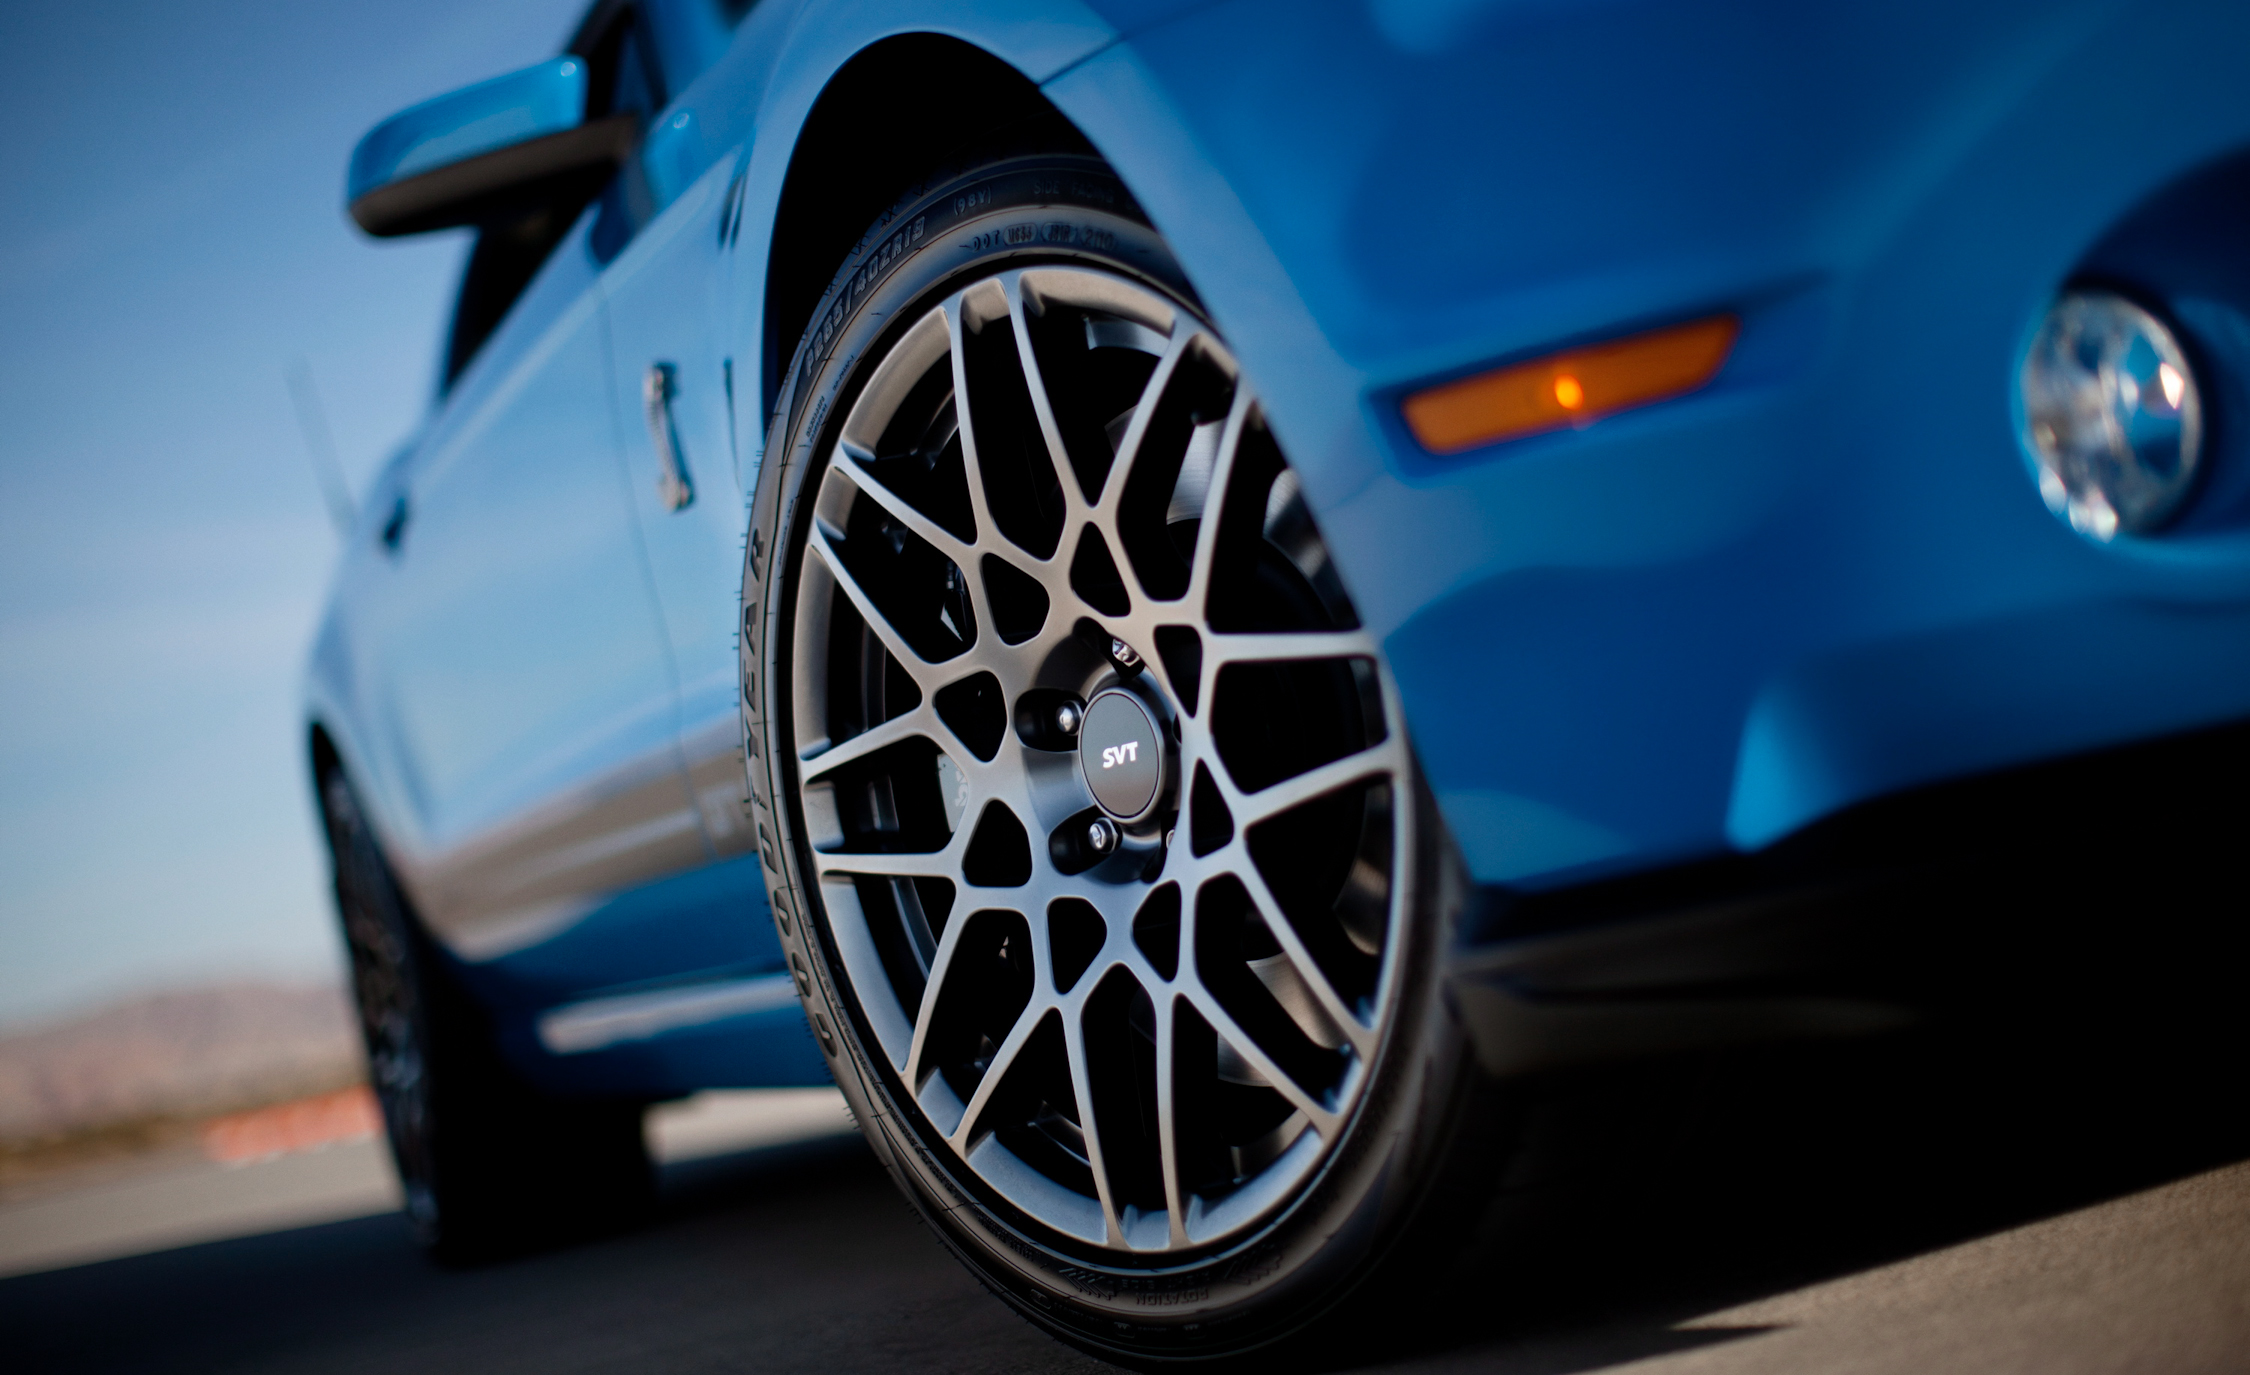 2013 Ford Mustang Shelby GT500 Blue Exterior View Wheel Velg (View 19 of 47)